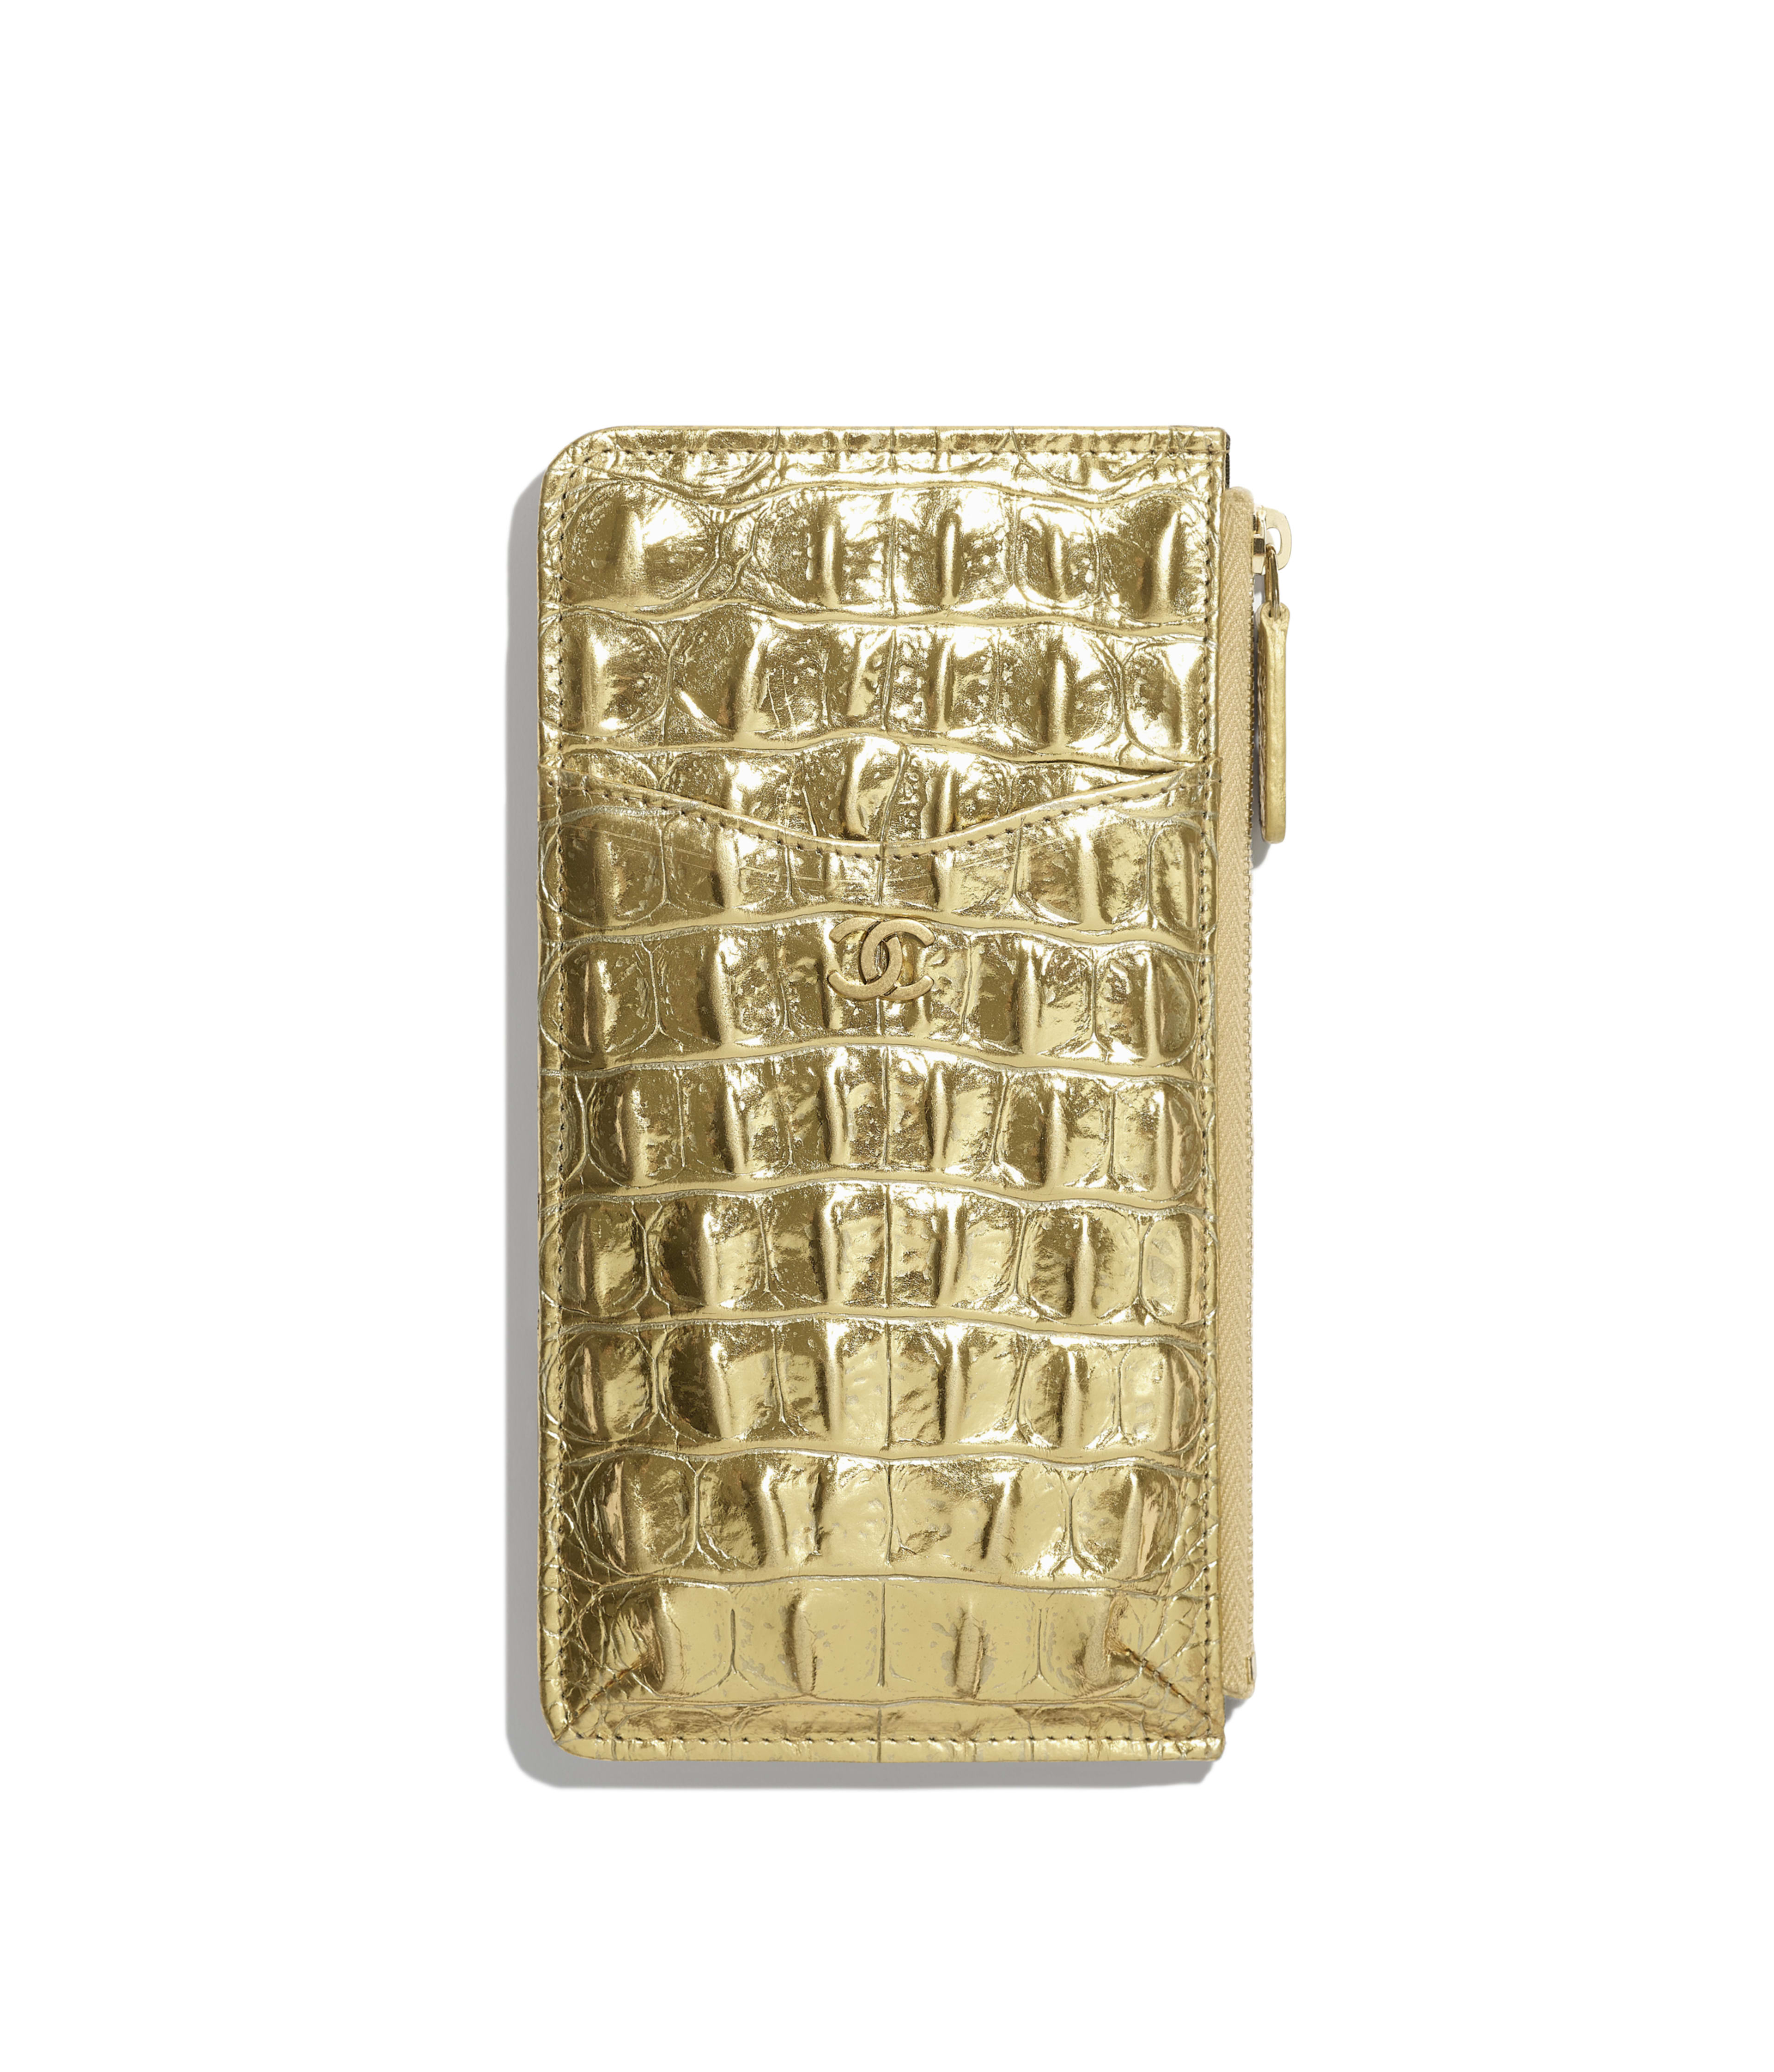 cfdffb9b8e Classic Pouch for iPhone Metallic Crocodile Embossed Calfskin & Gold Metal,  Gold Ref. A81598B00798N4752